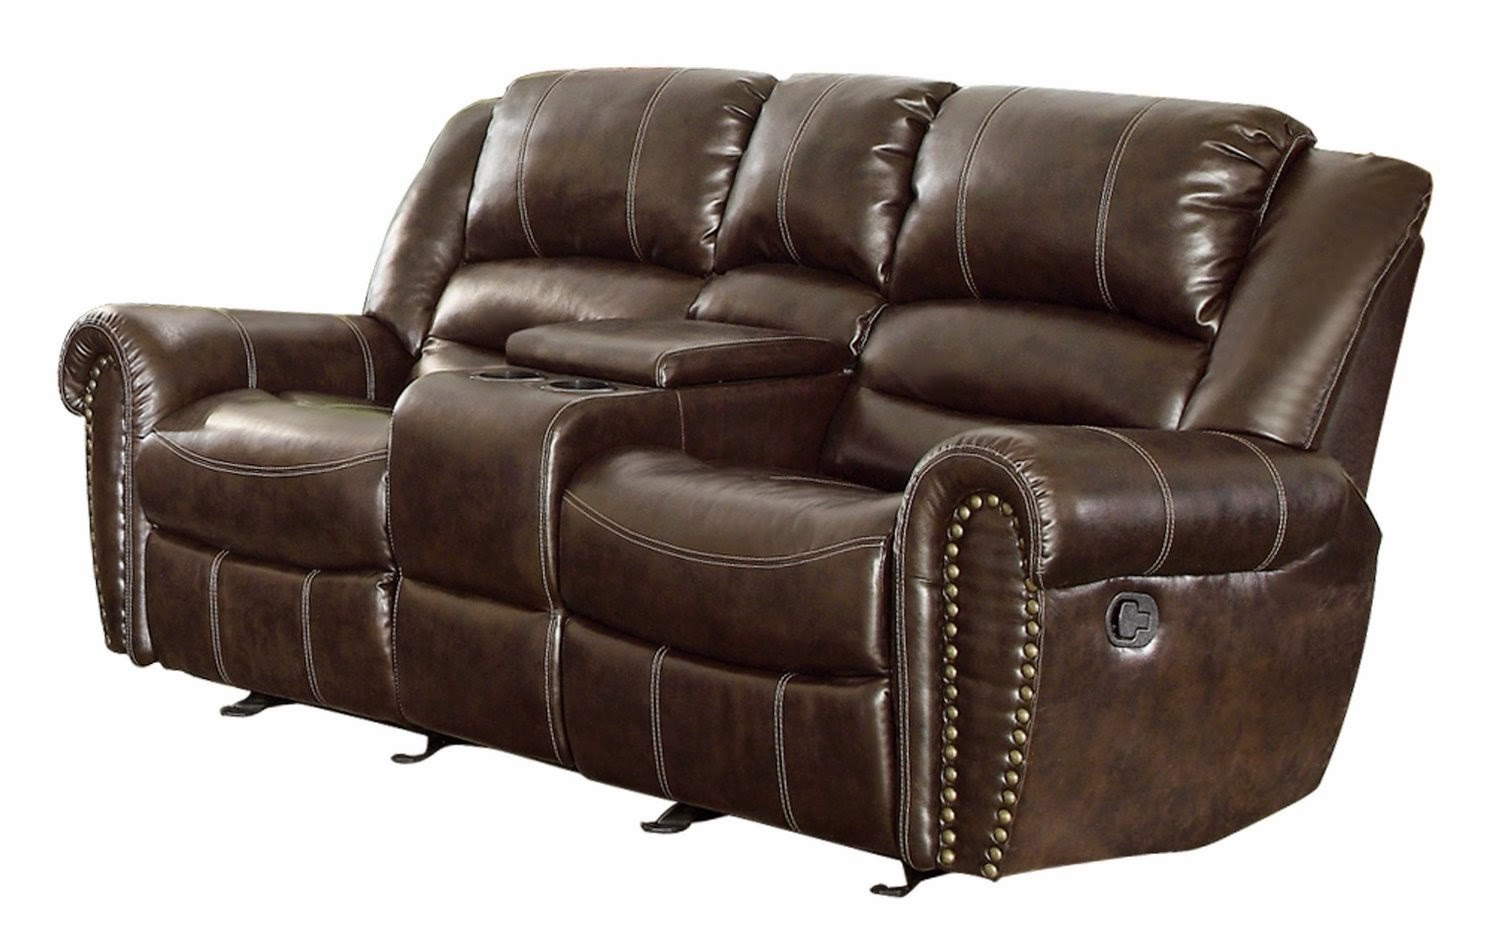 Cheap Reclining Sofas Sale: 2 Seater Leather Recliner Sofa ...